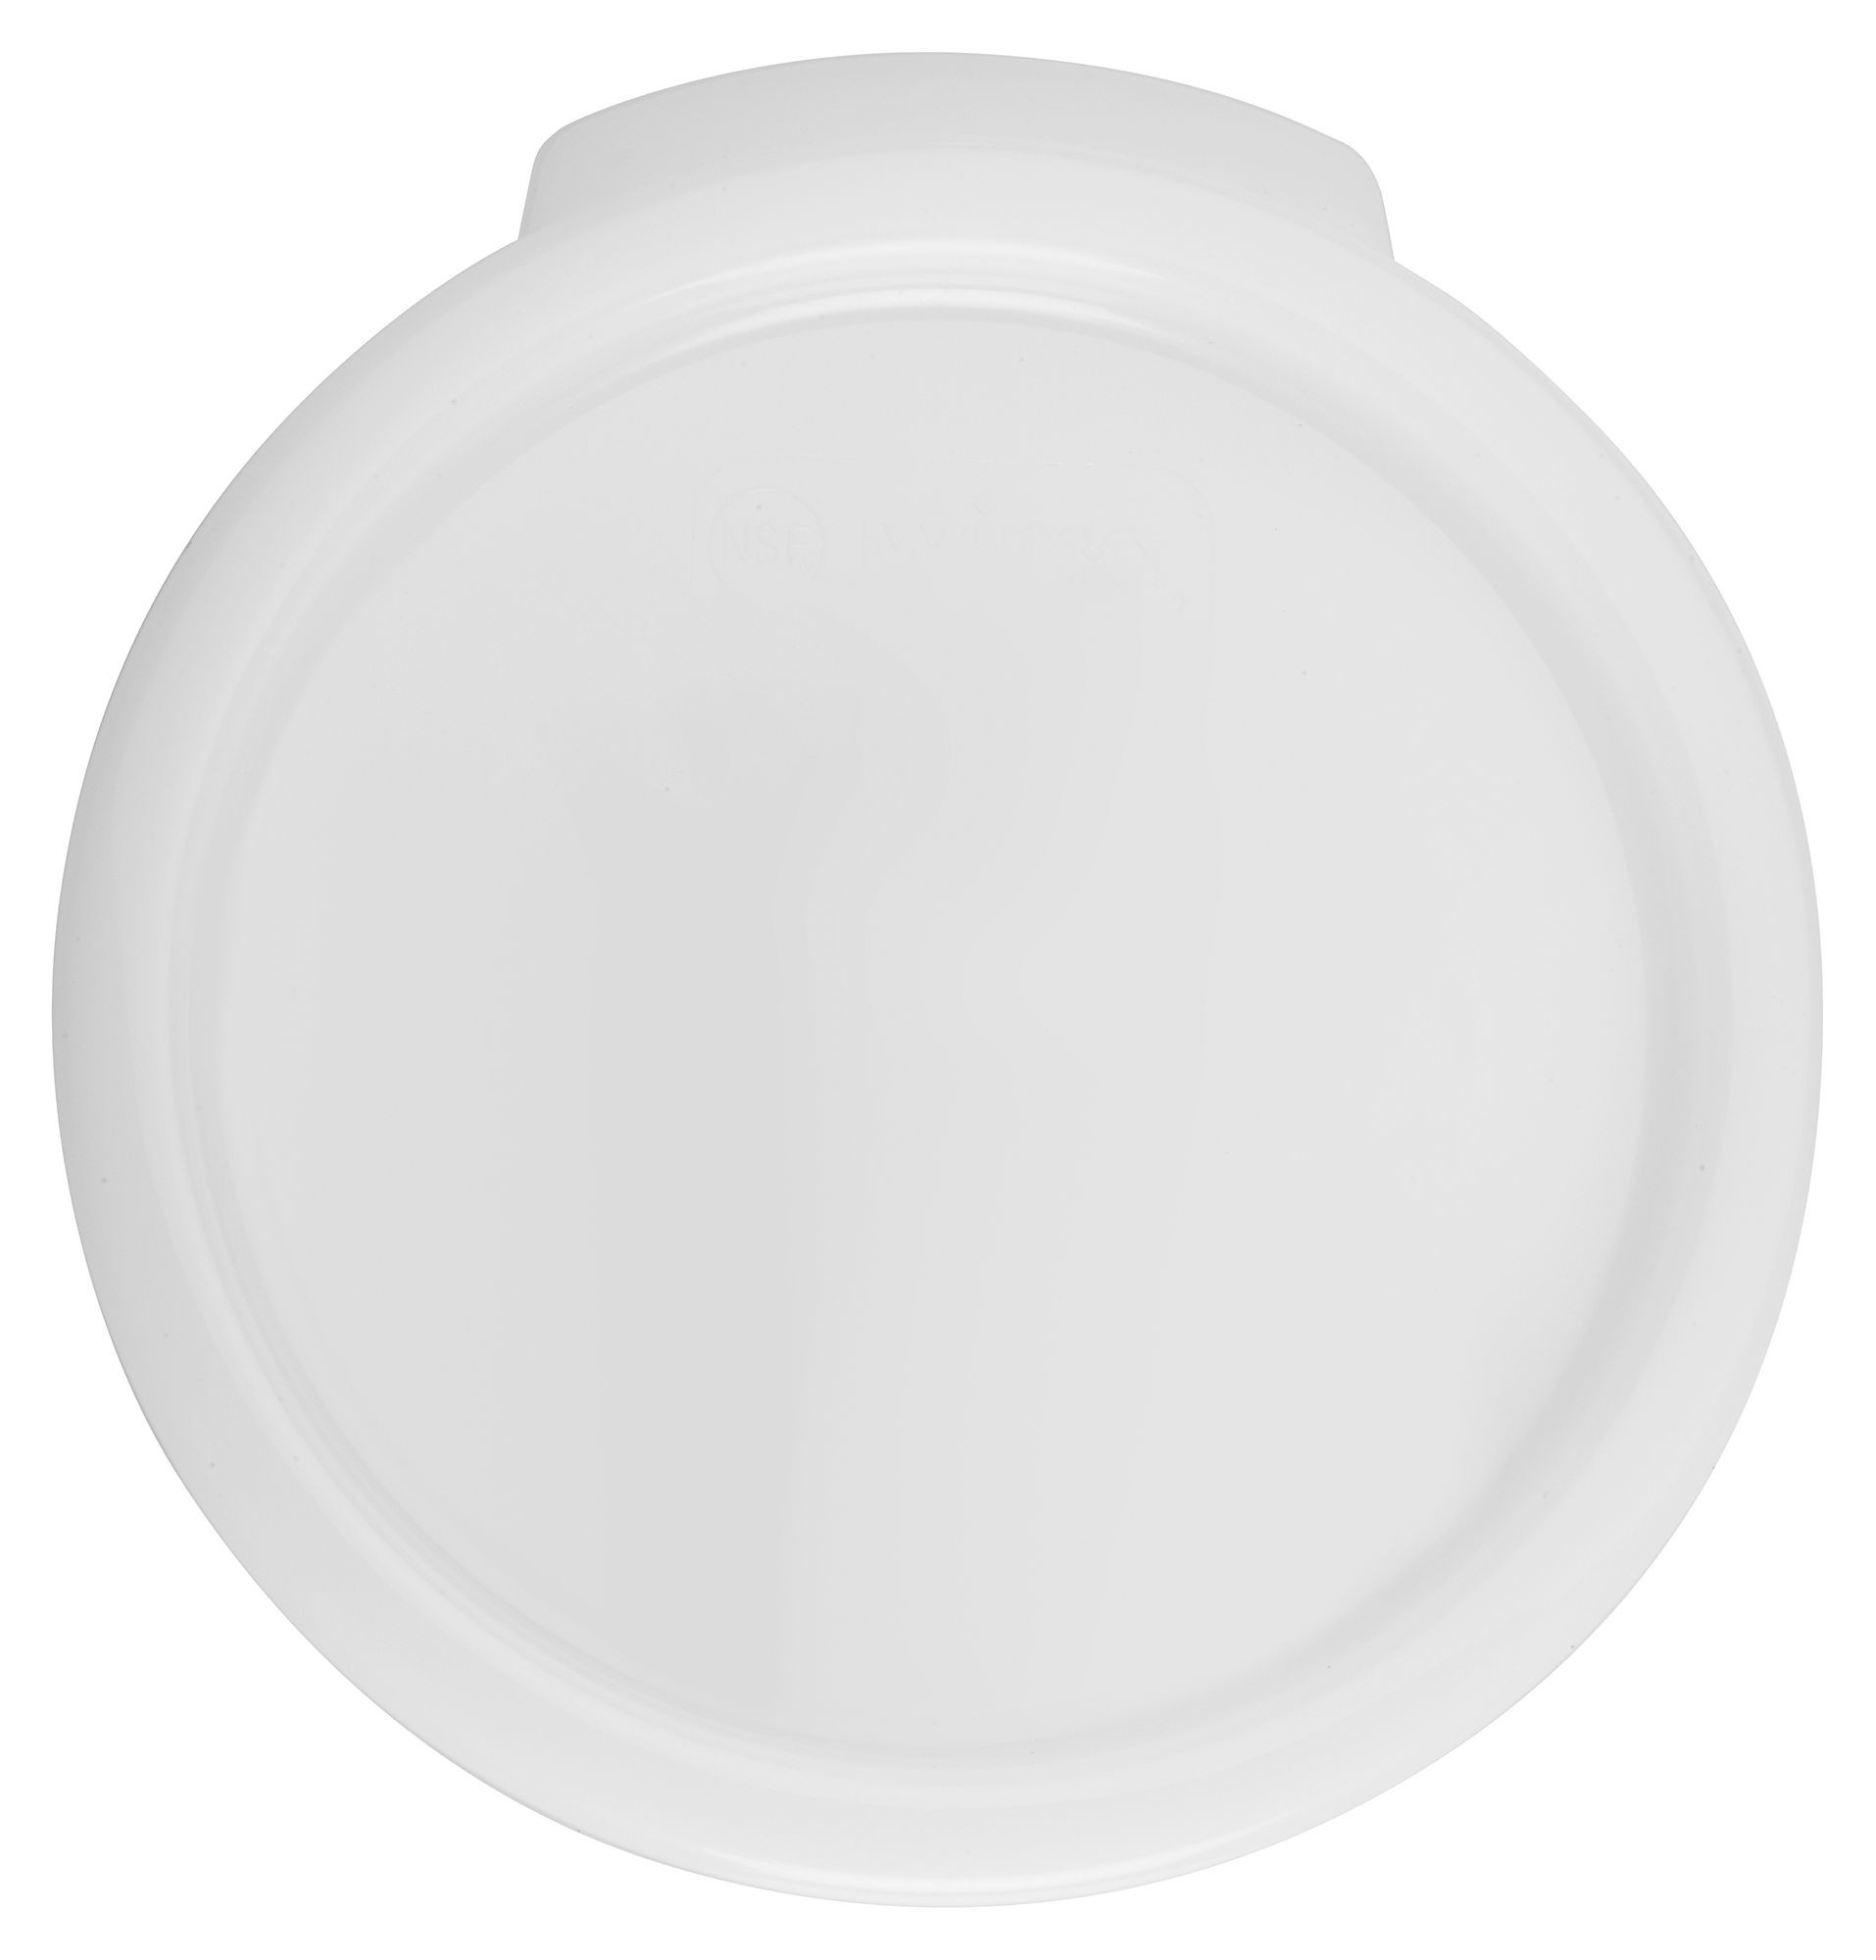 Winco PPRC-1222C White Round Cover for 12/18/22 Qt. Storage Containers